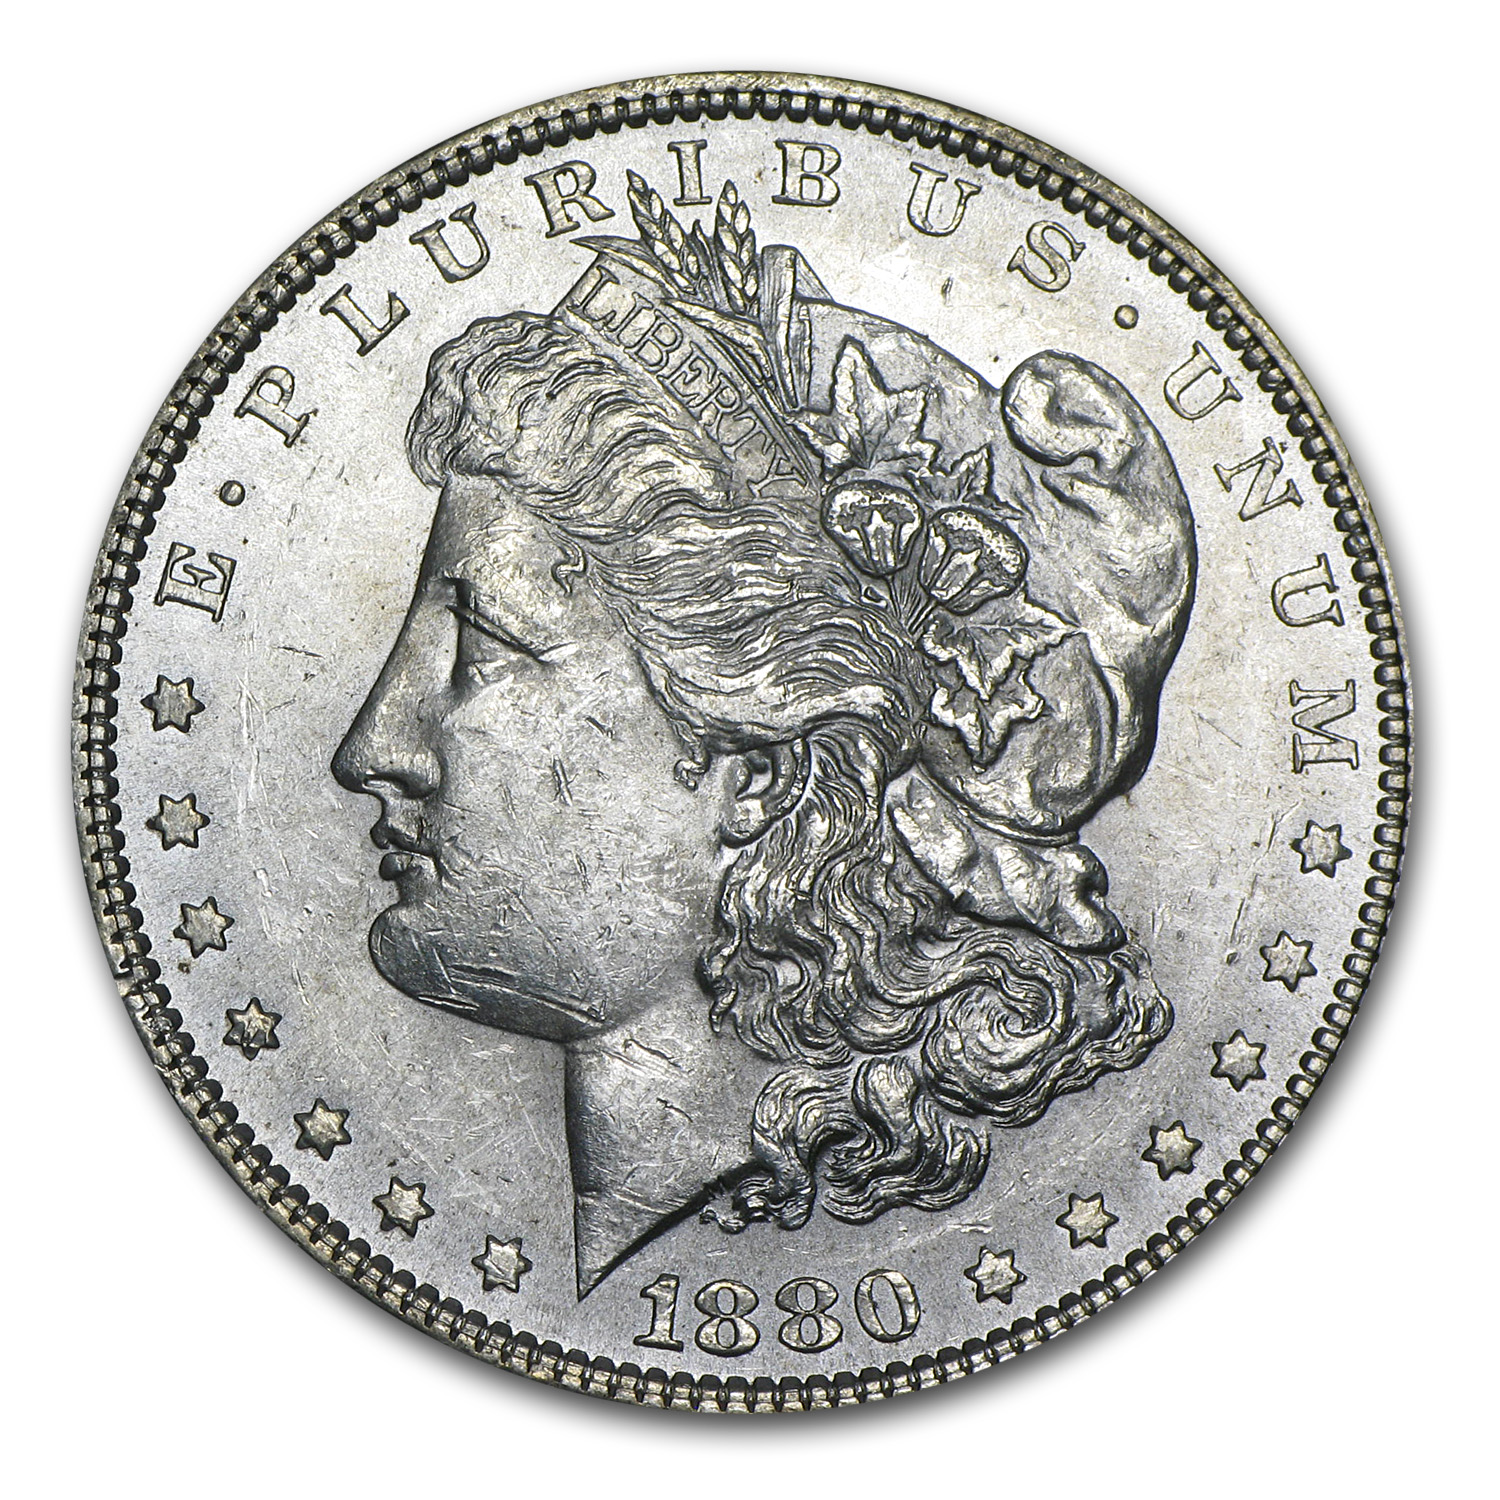 1880 Morgan Dollar - Brilliant Uncirculated